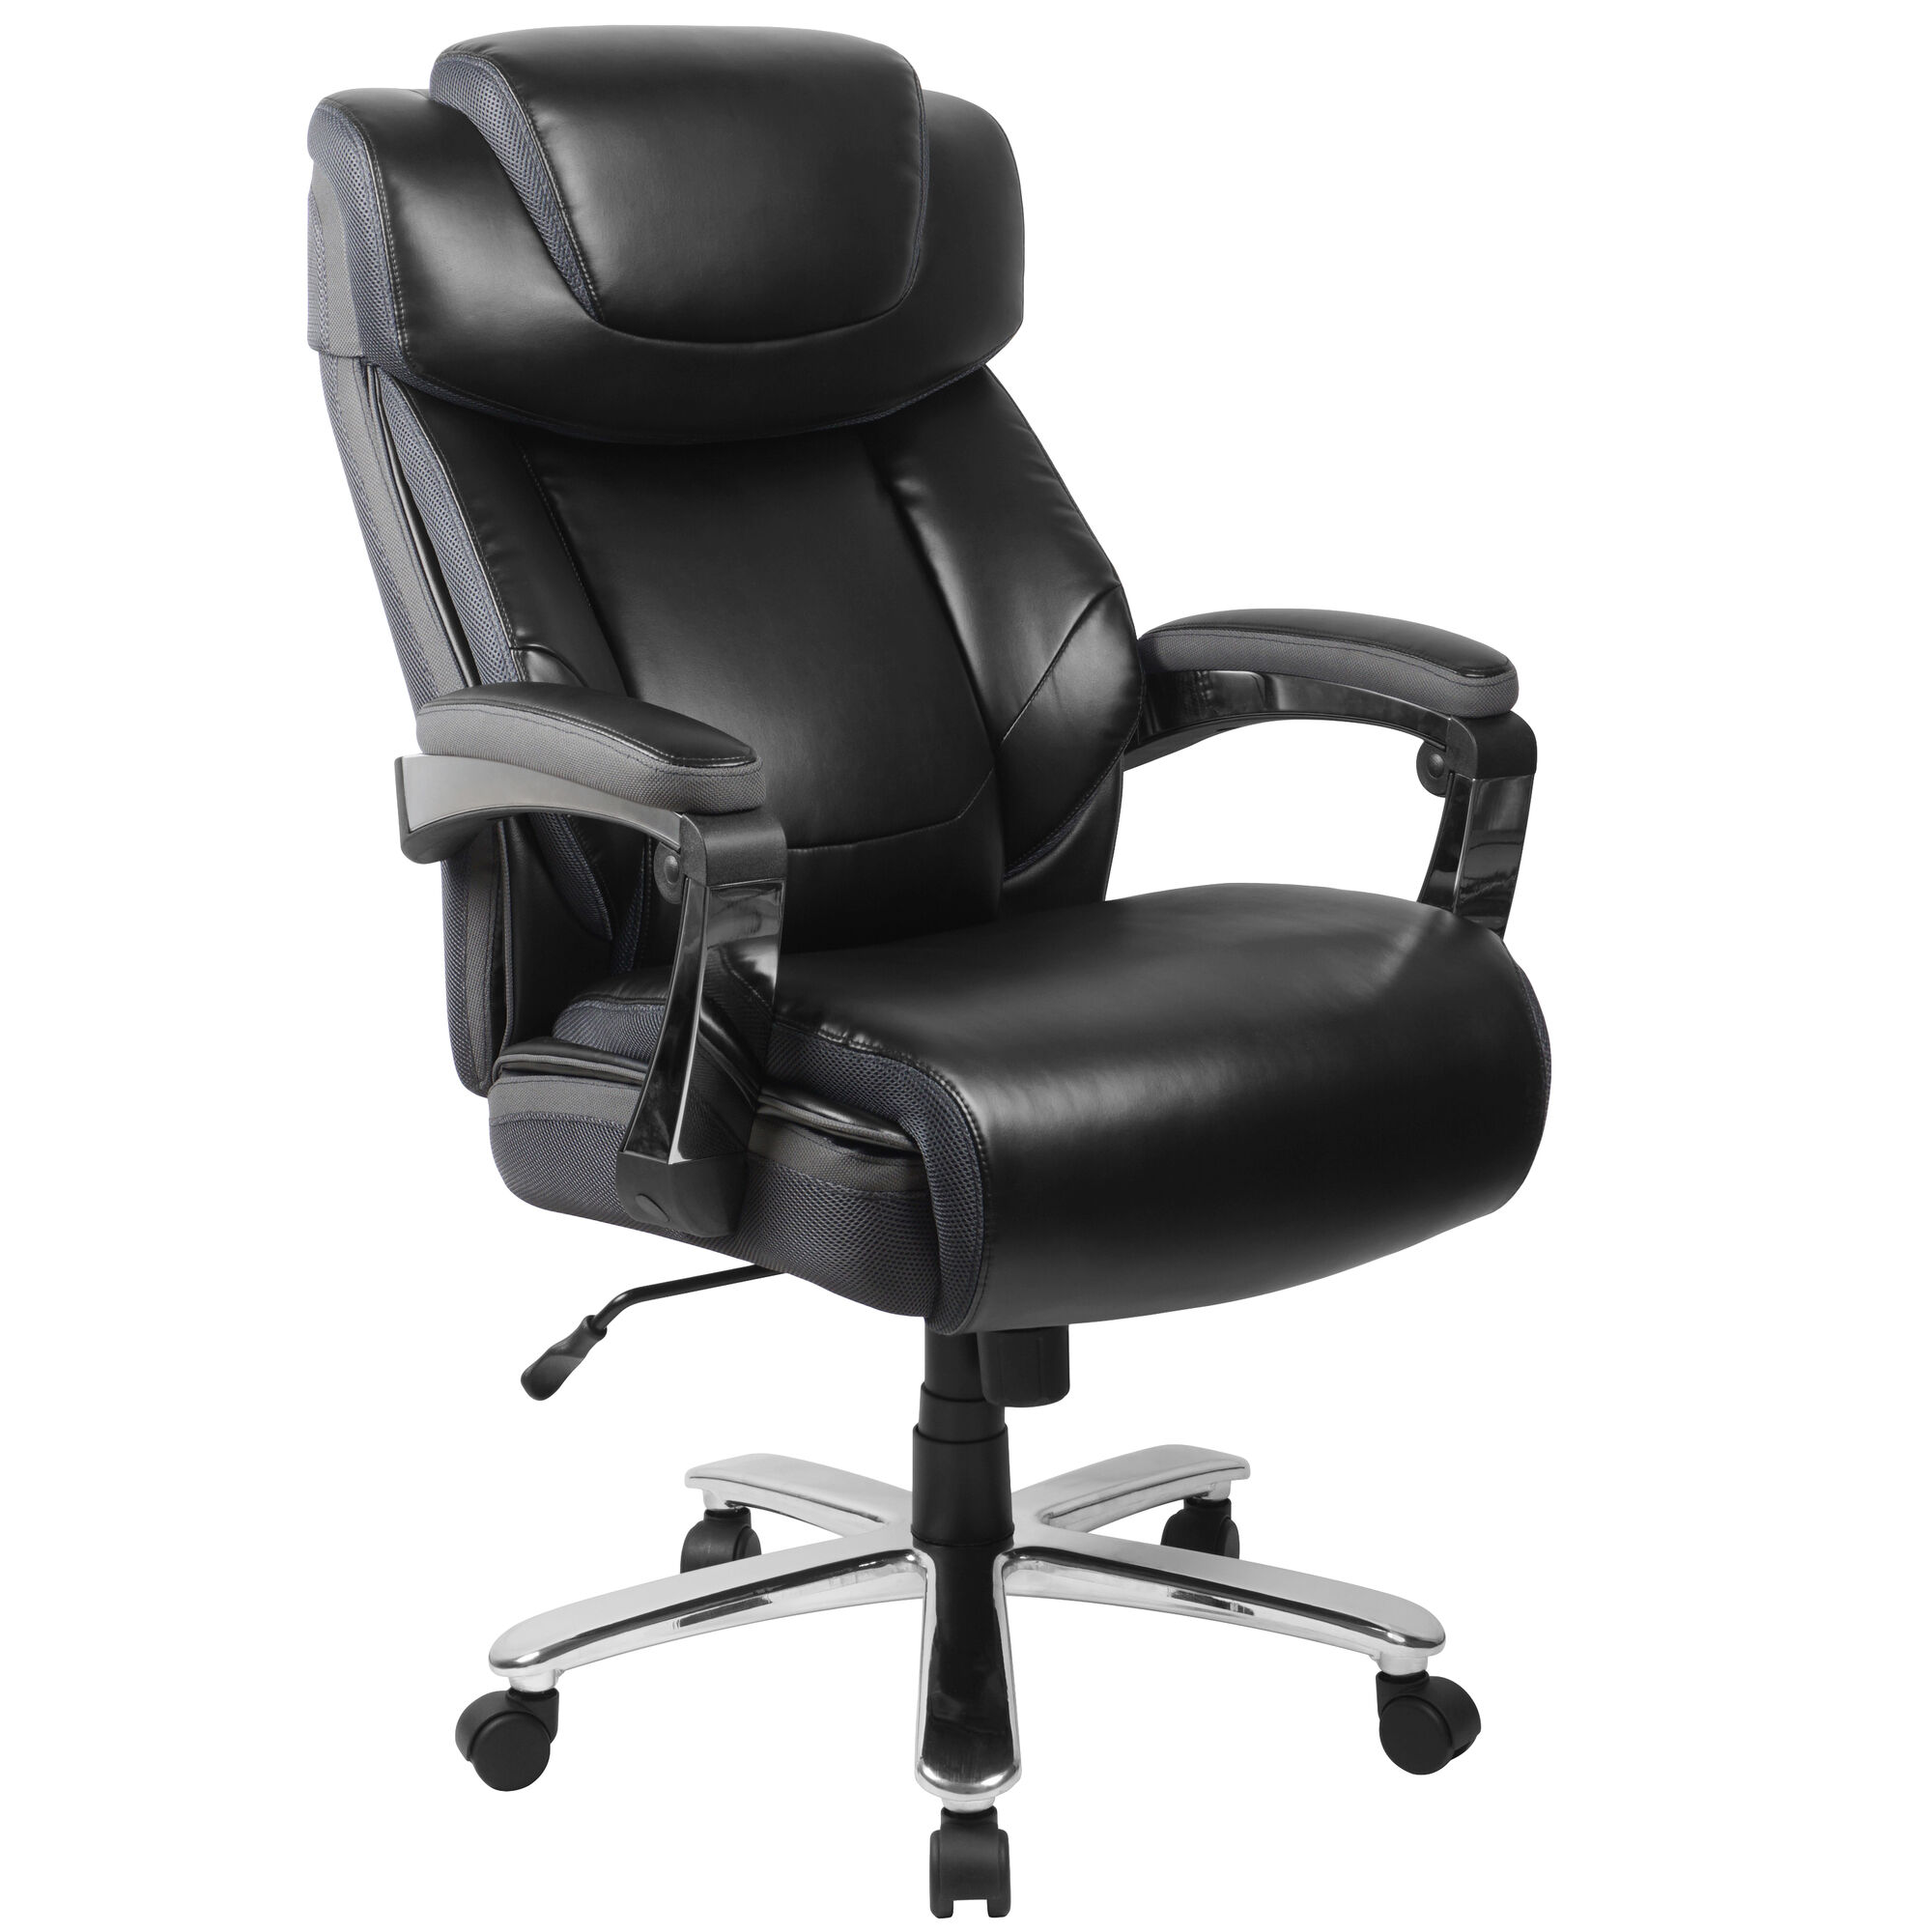 Amazing Hercules Series Big Tall 500 Lb Rated Black Leather Executive Swivel Ergonomic Office Chair With Adjustable Headrest Onthecornerstone Fun Painted Chair Ideas Images Onthecornerstoneorg